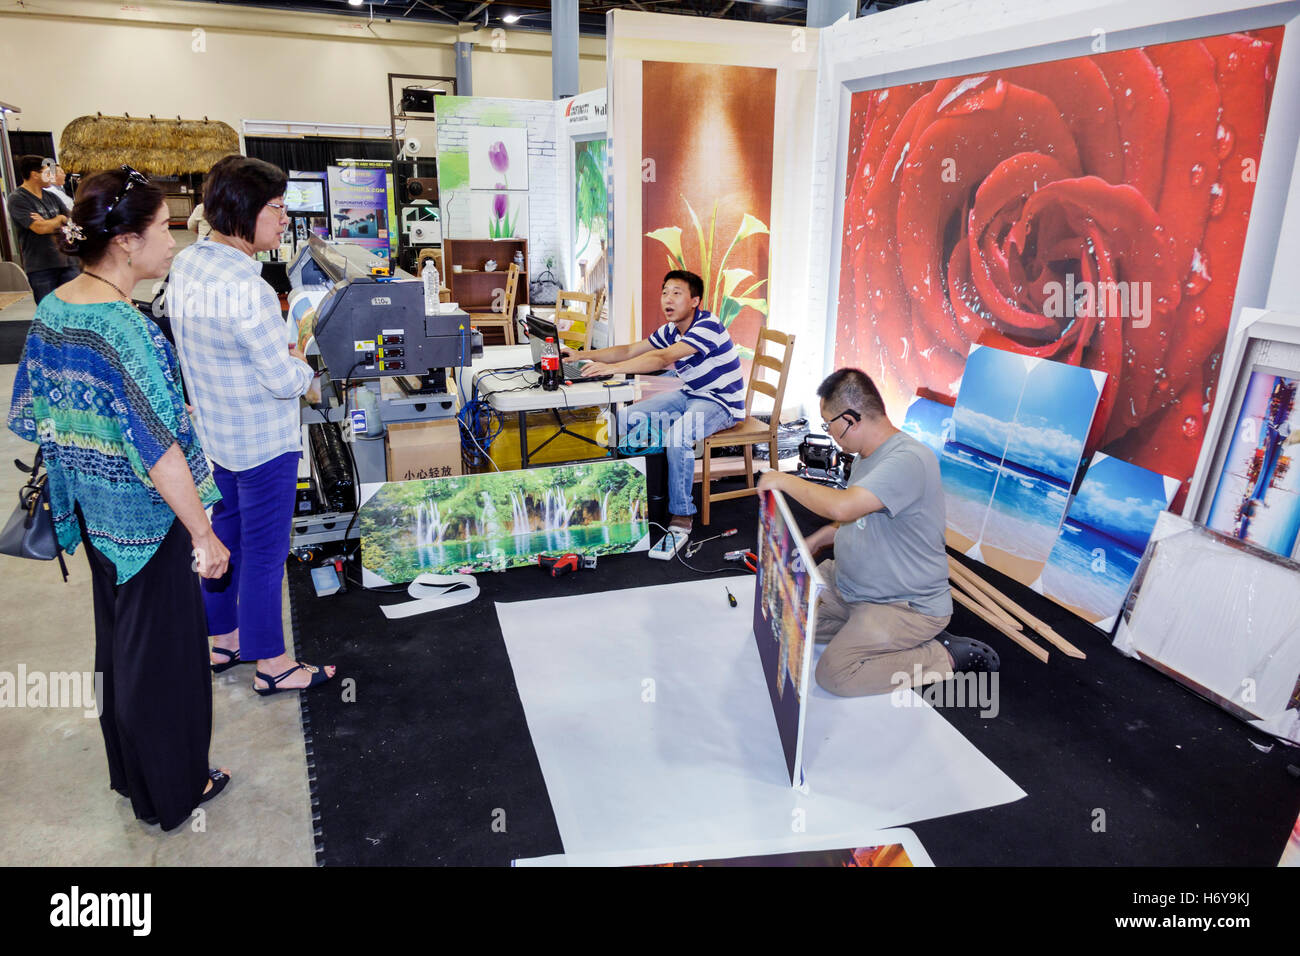 Amazing Miami Florida Beach Convention Center Centre Home Design And Remodeling  Show Photo Murals Printing Company Asian Woman Man Framing